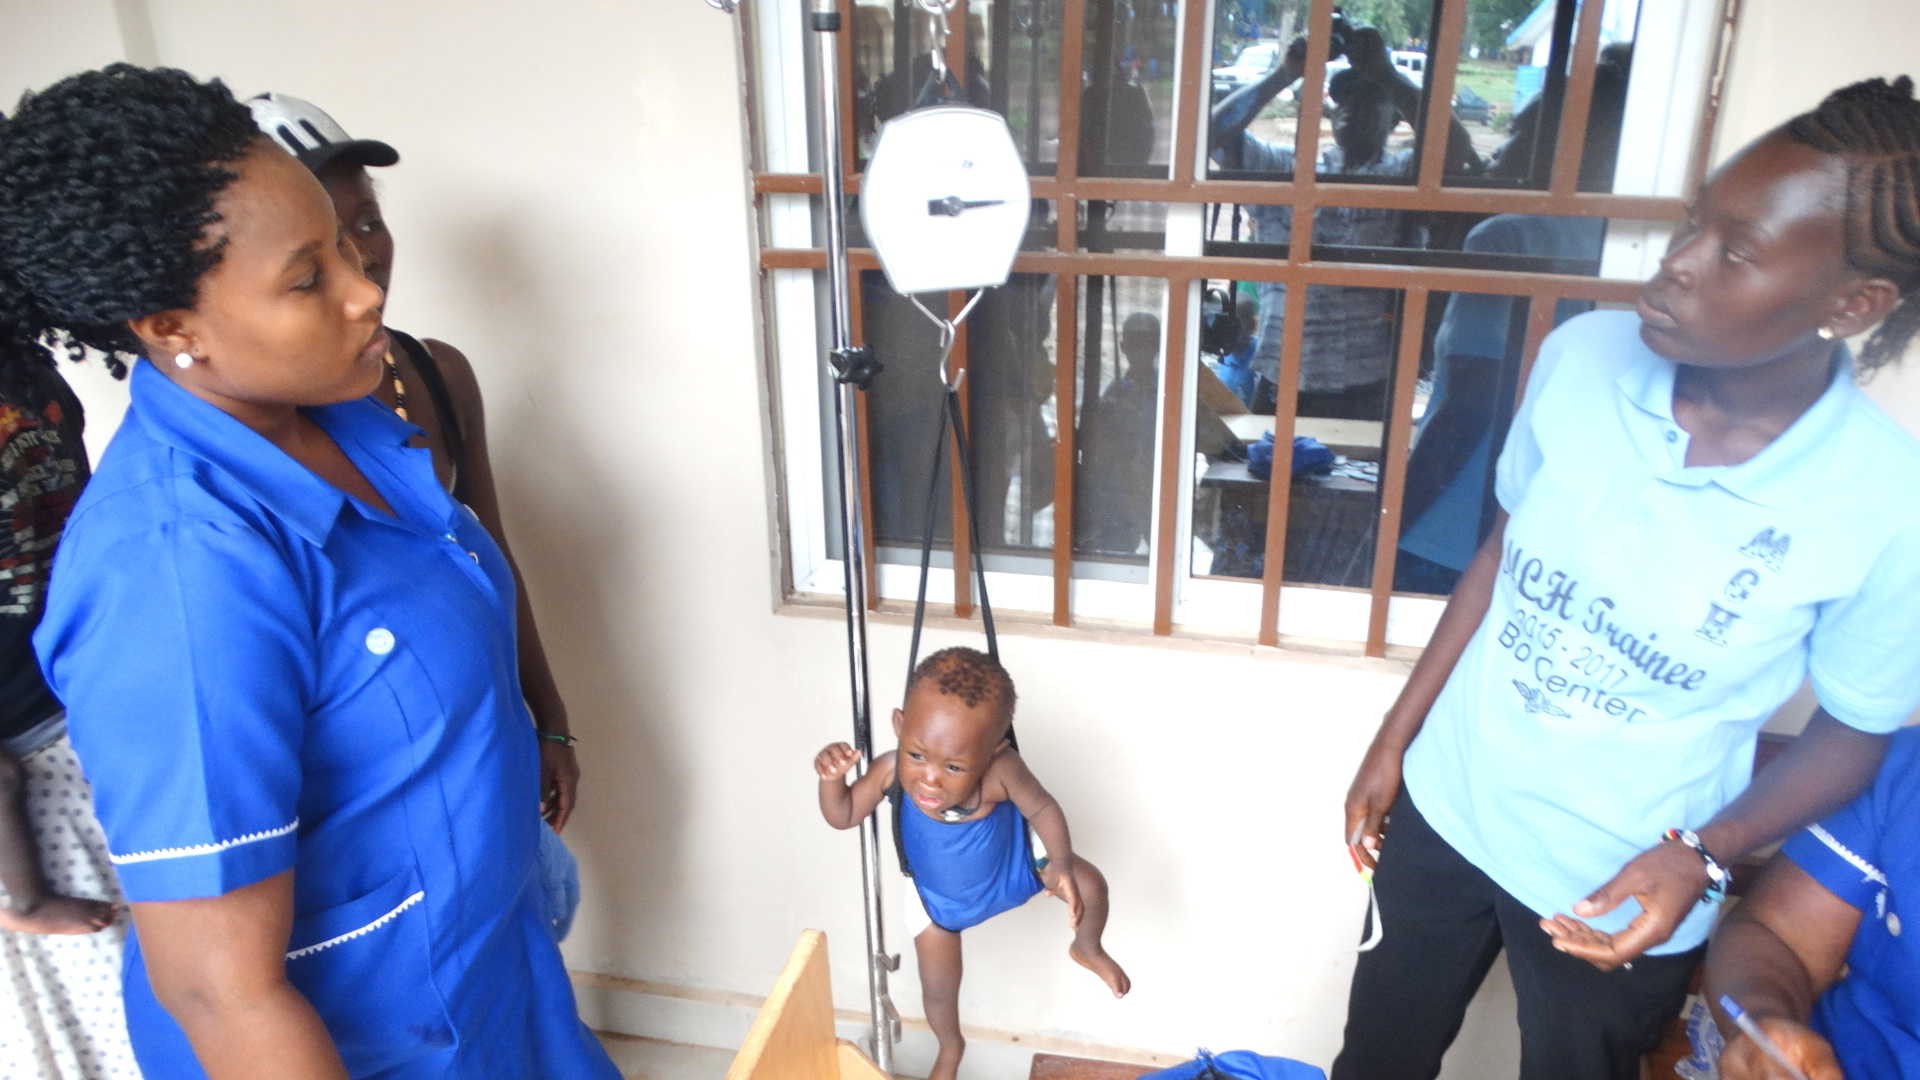 Staff at United Methodist Mercy Hospital in Bo, Sierra Leone, weigh a child during one of the hospital's outreach days on the hospital grounds. Photo by Phileas Jusu, UMNS.